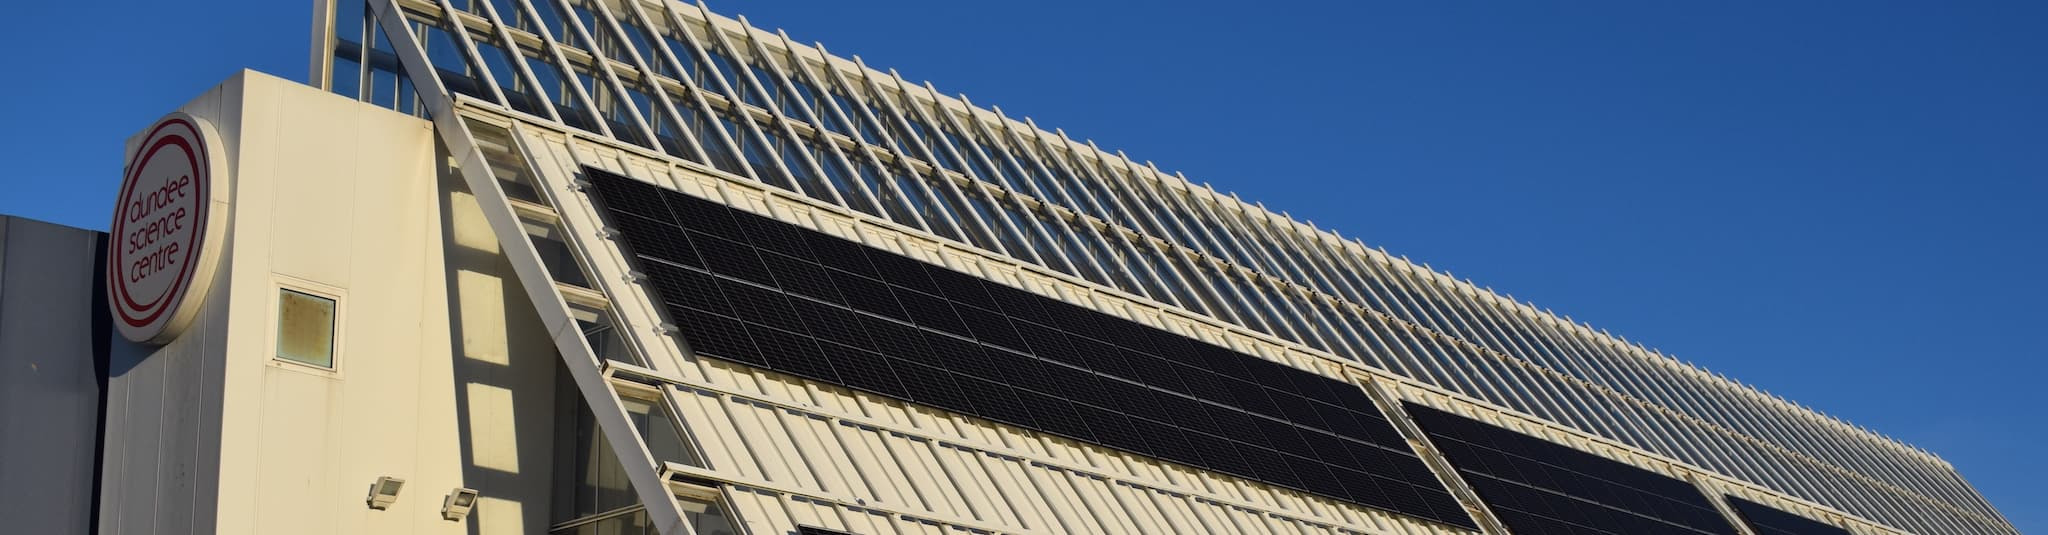 Solar Panels at Dundee Science Centre (DSC)